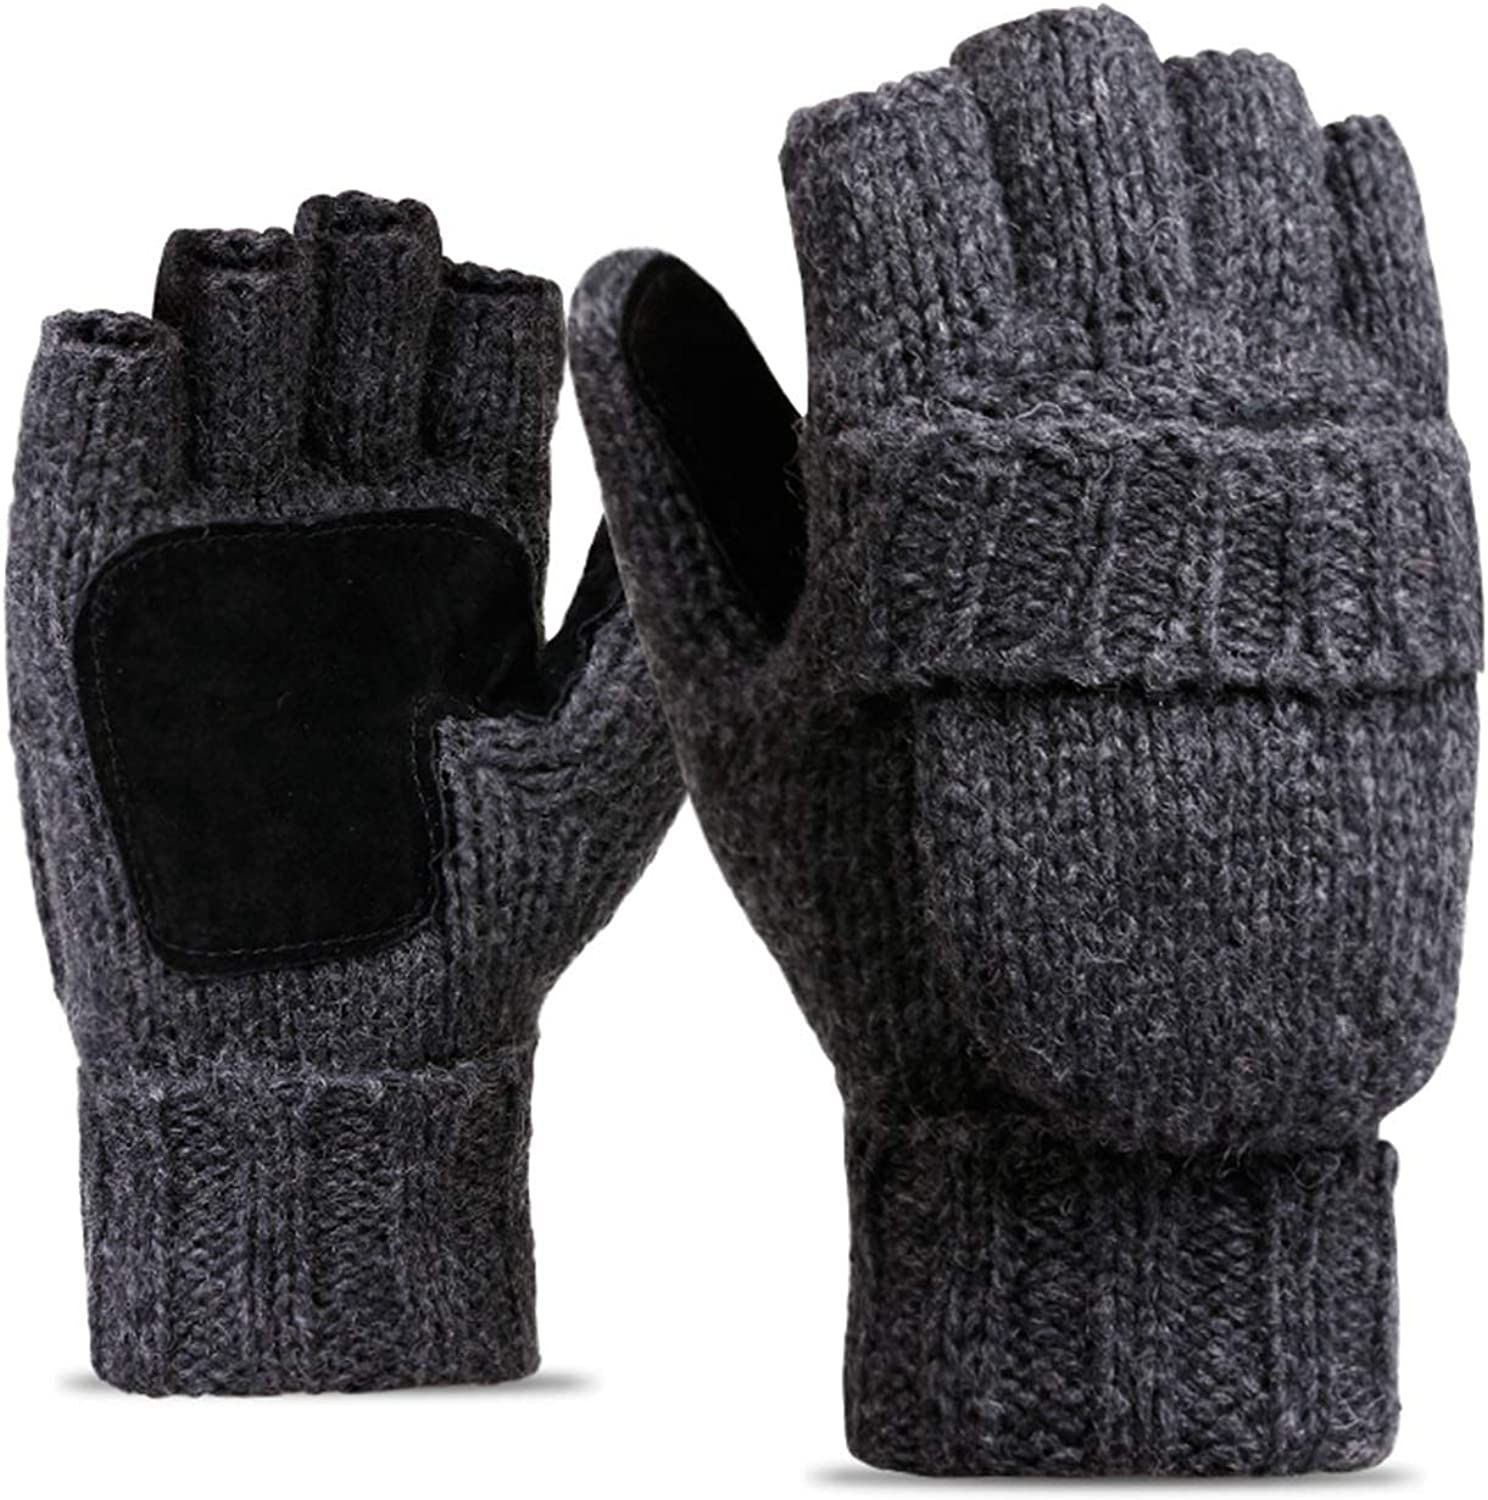 Golovejoy Wool Knit New popularity Gloves Fingerless Wi Warm Over item handling Convertible